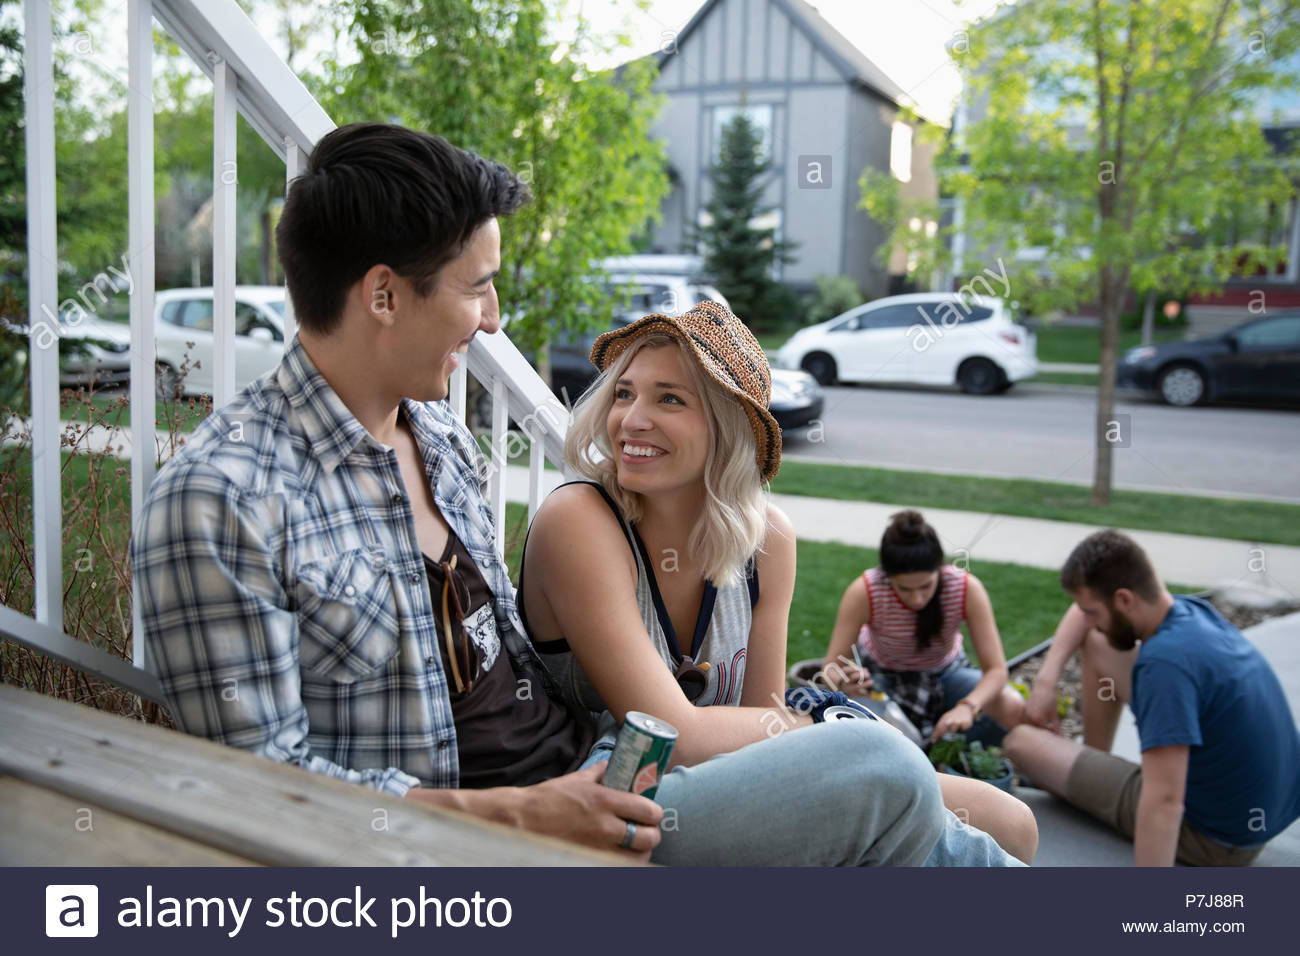 Smiling couple taking a break from gardening with friends on front stoop - Stock Image